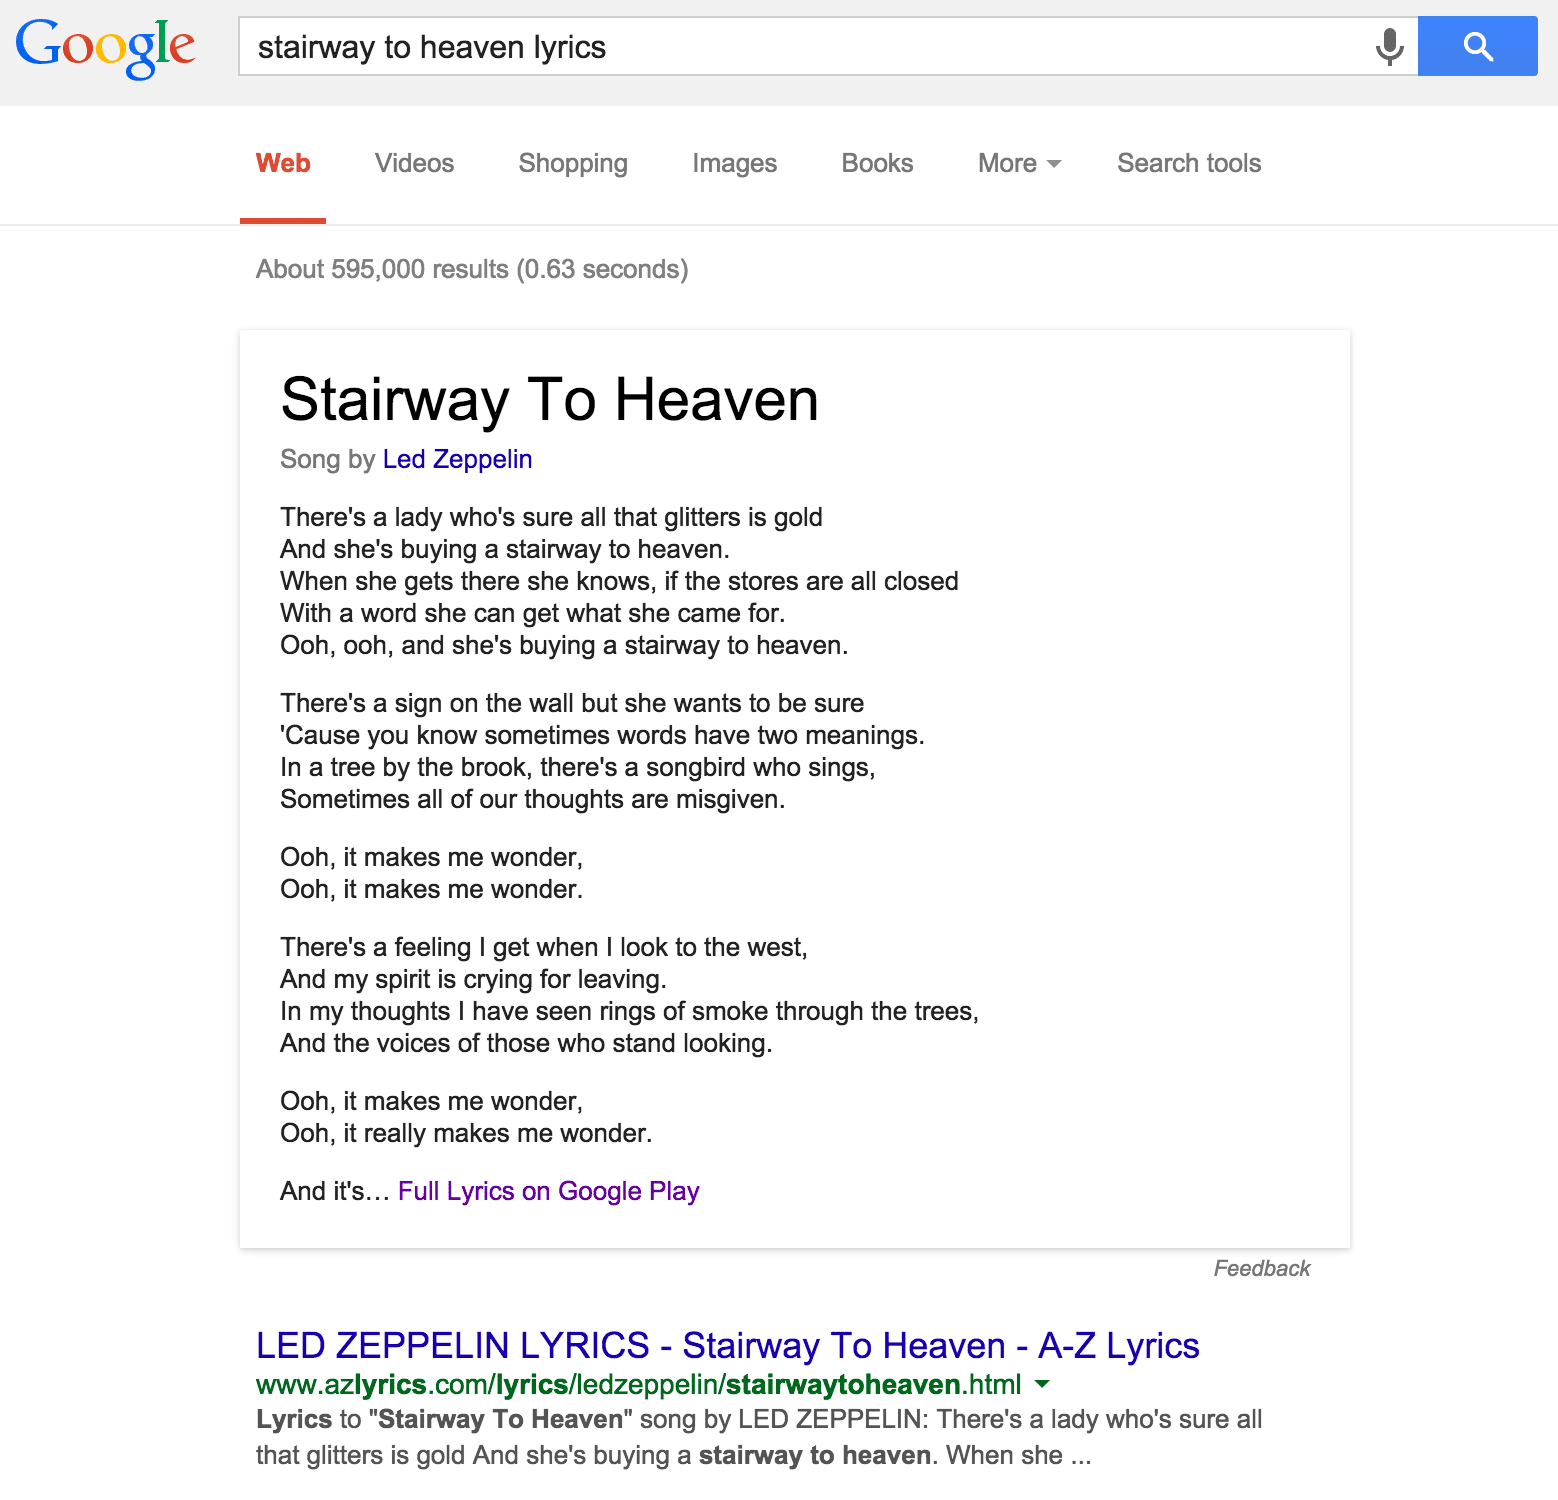 Stairway to heaven lyrics - Led Zeppelin